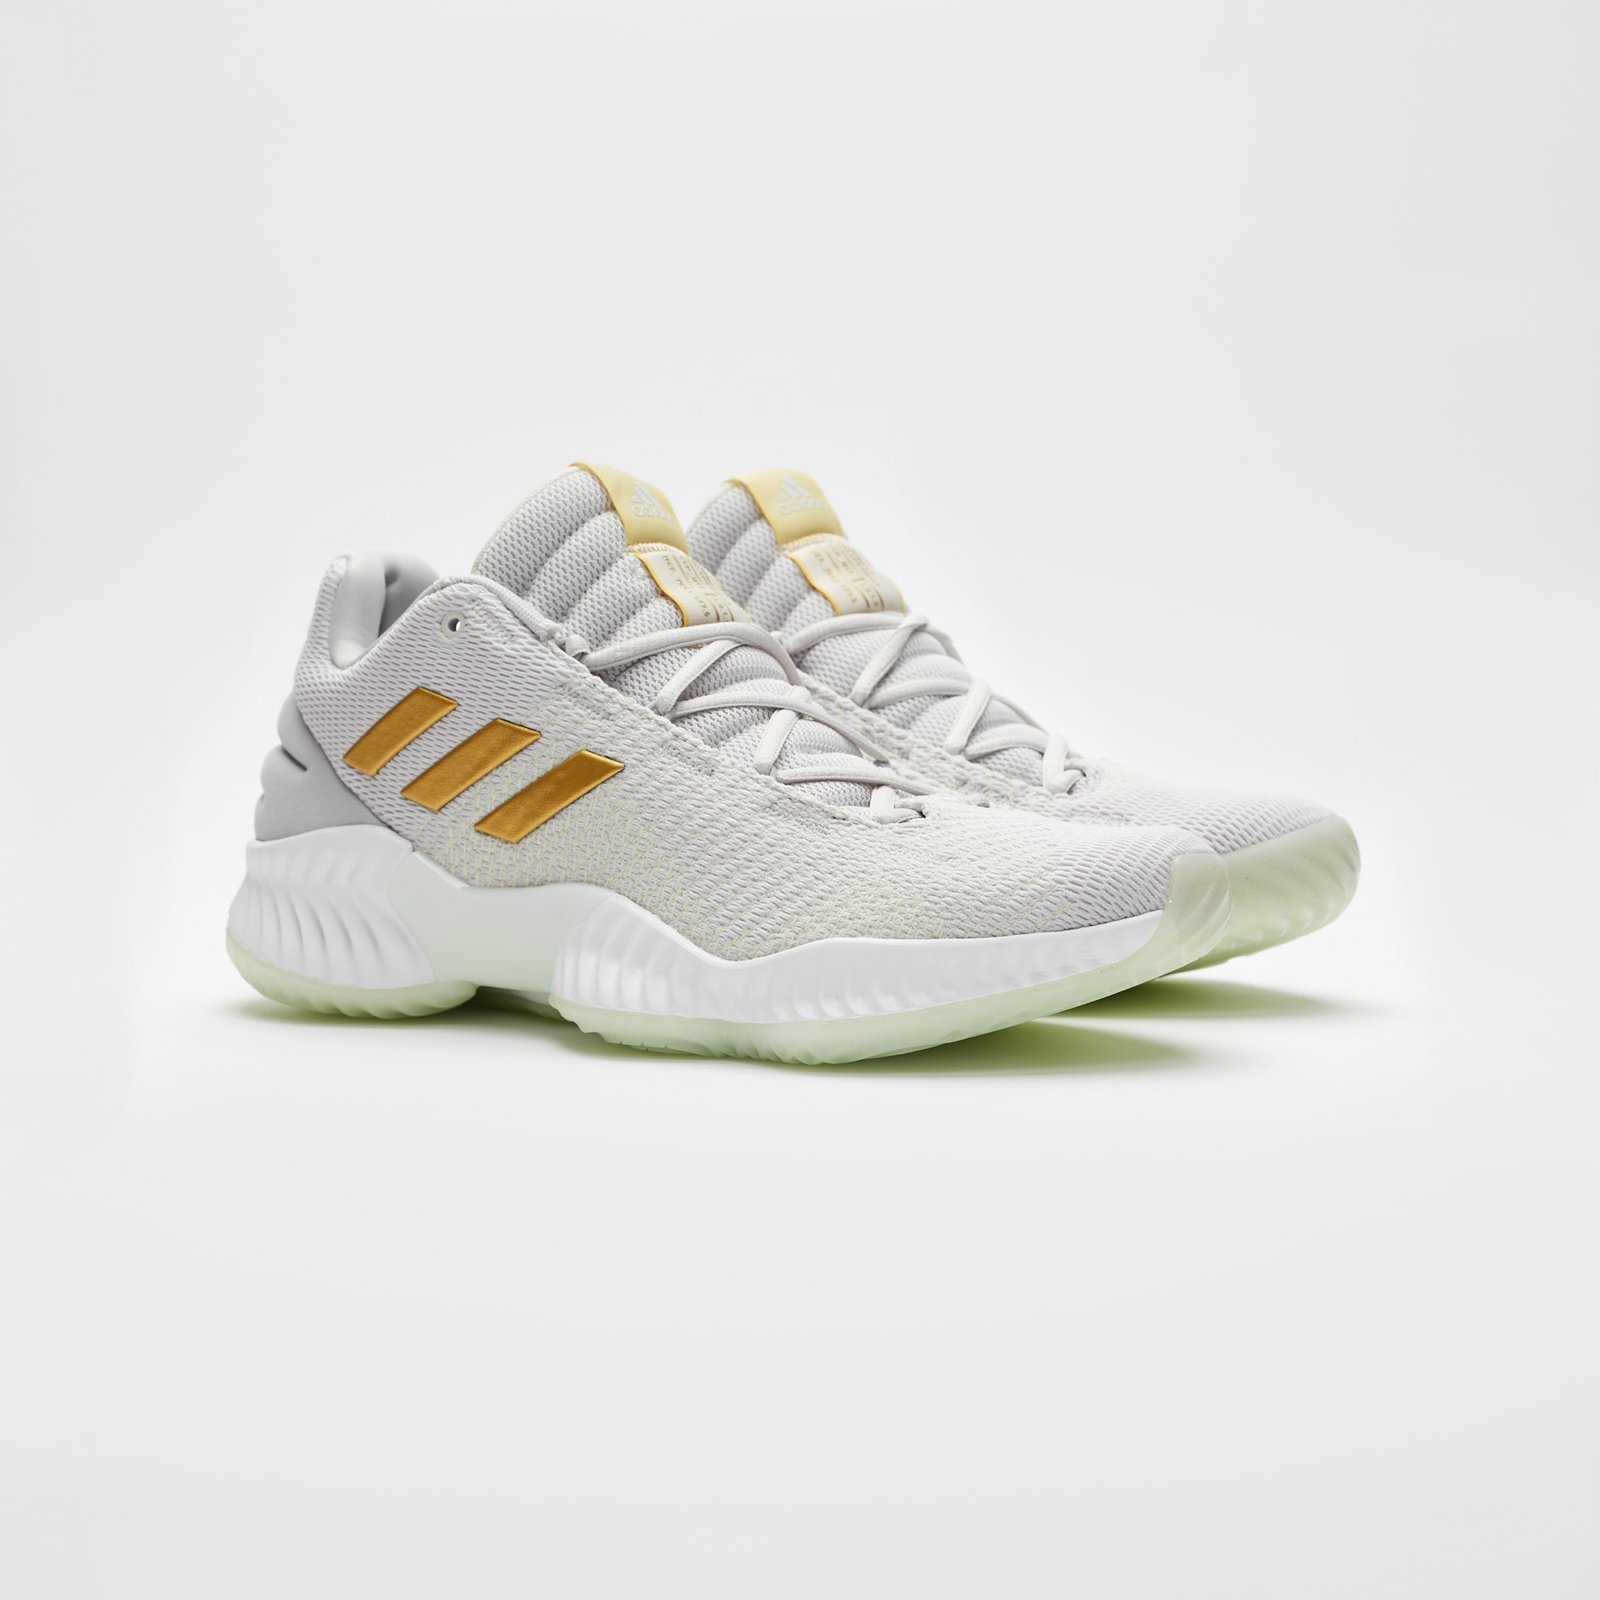 a31360787c3 adidas Pro Bounce 2018 Low - B41863 - Sneakersnstuff